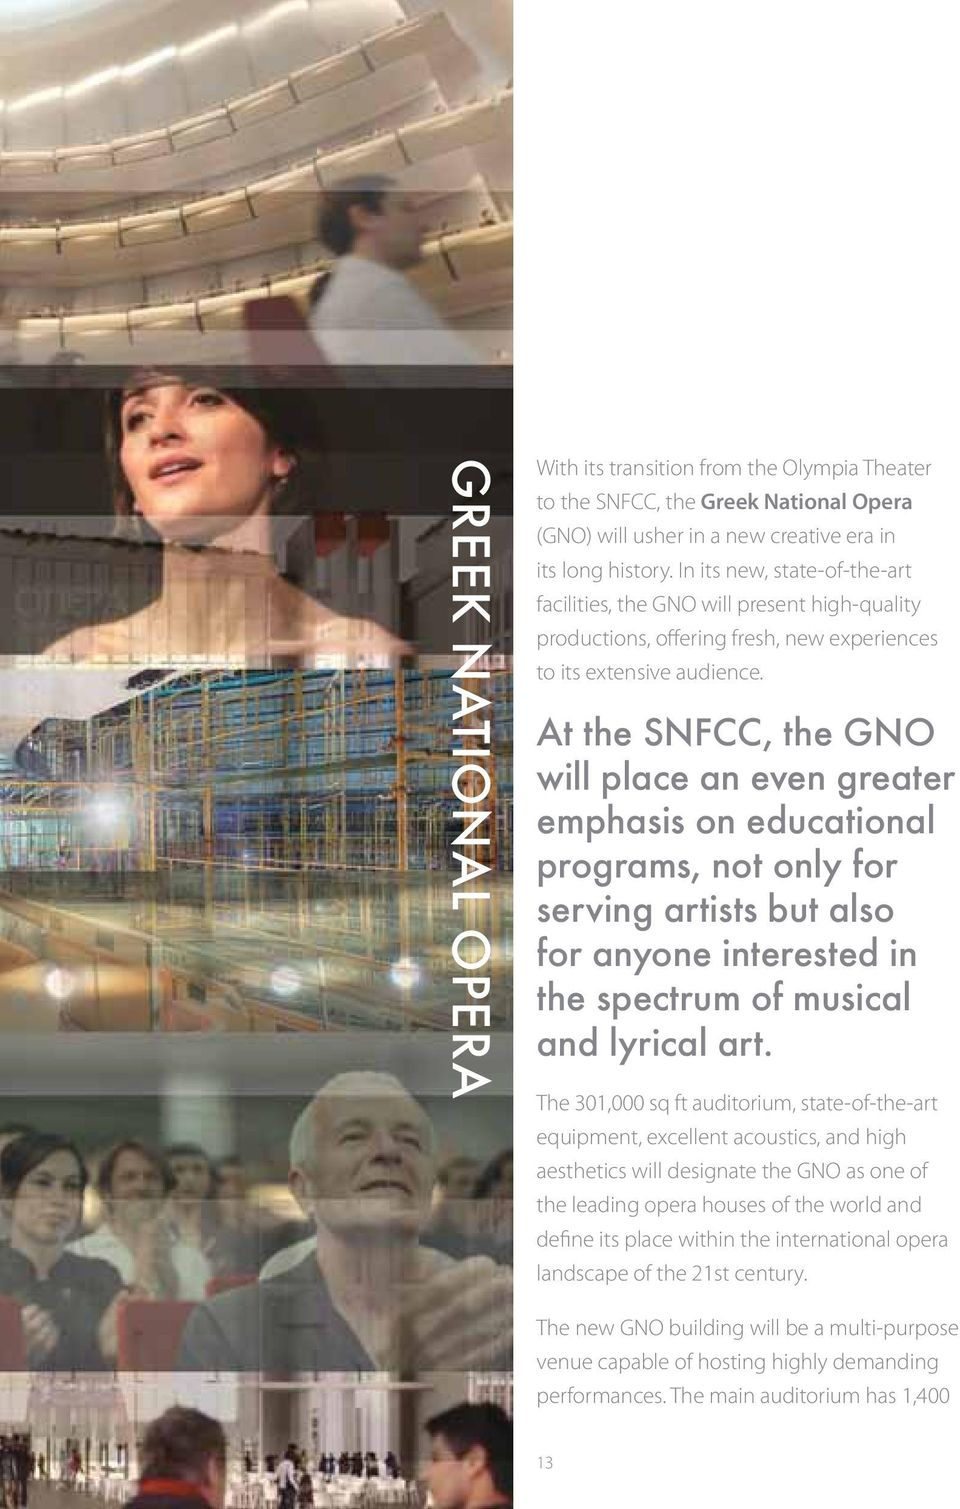 At the SNFCC, the GNO will place an even greater emphasis on educational programs, not only for serving artists but also for anyone interested in the spectrum of musical and lyrical art.